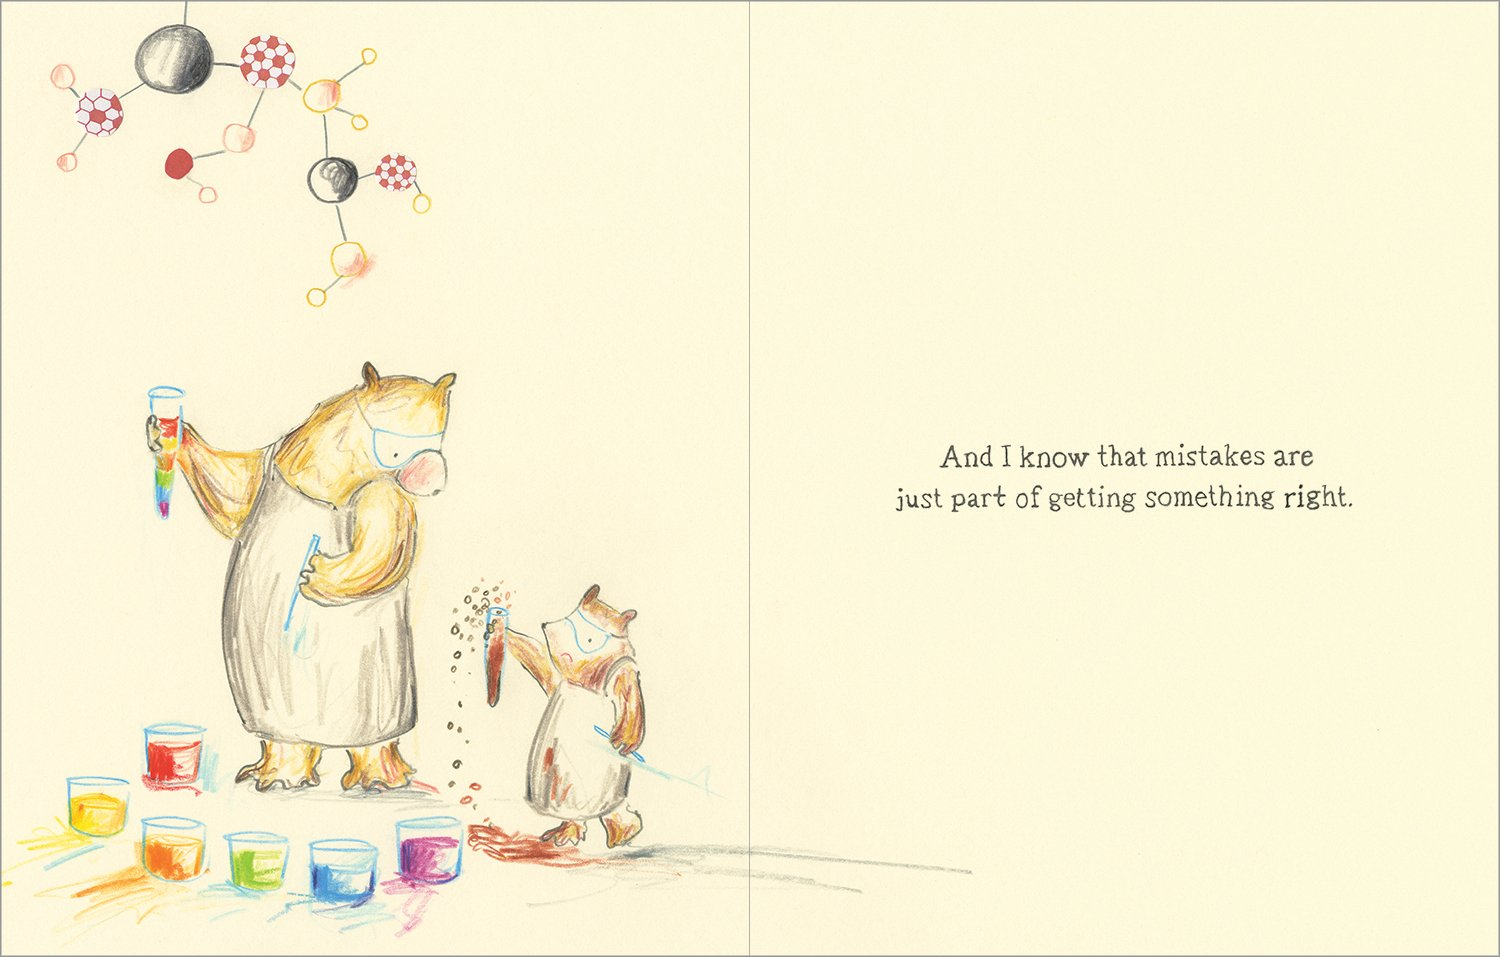 celebrate-picture-books-picture-book-review-because-i-had-a-teacher-mistakes